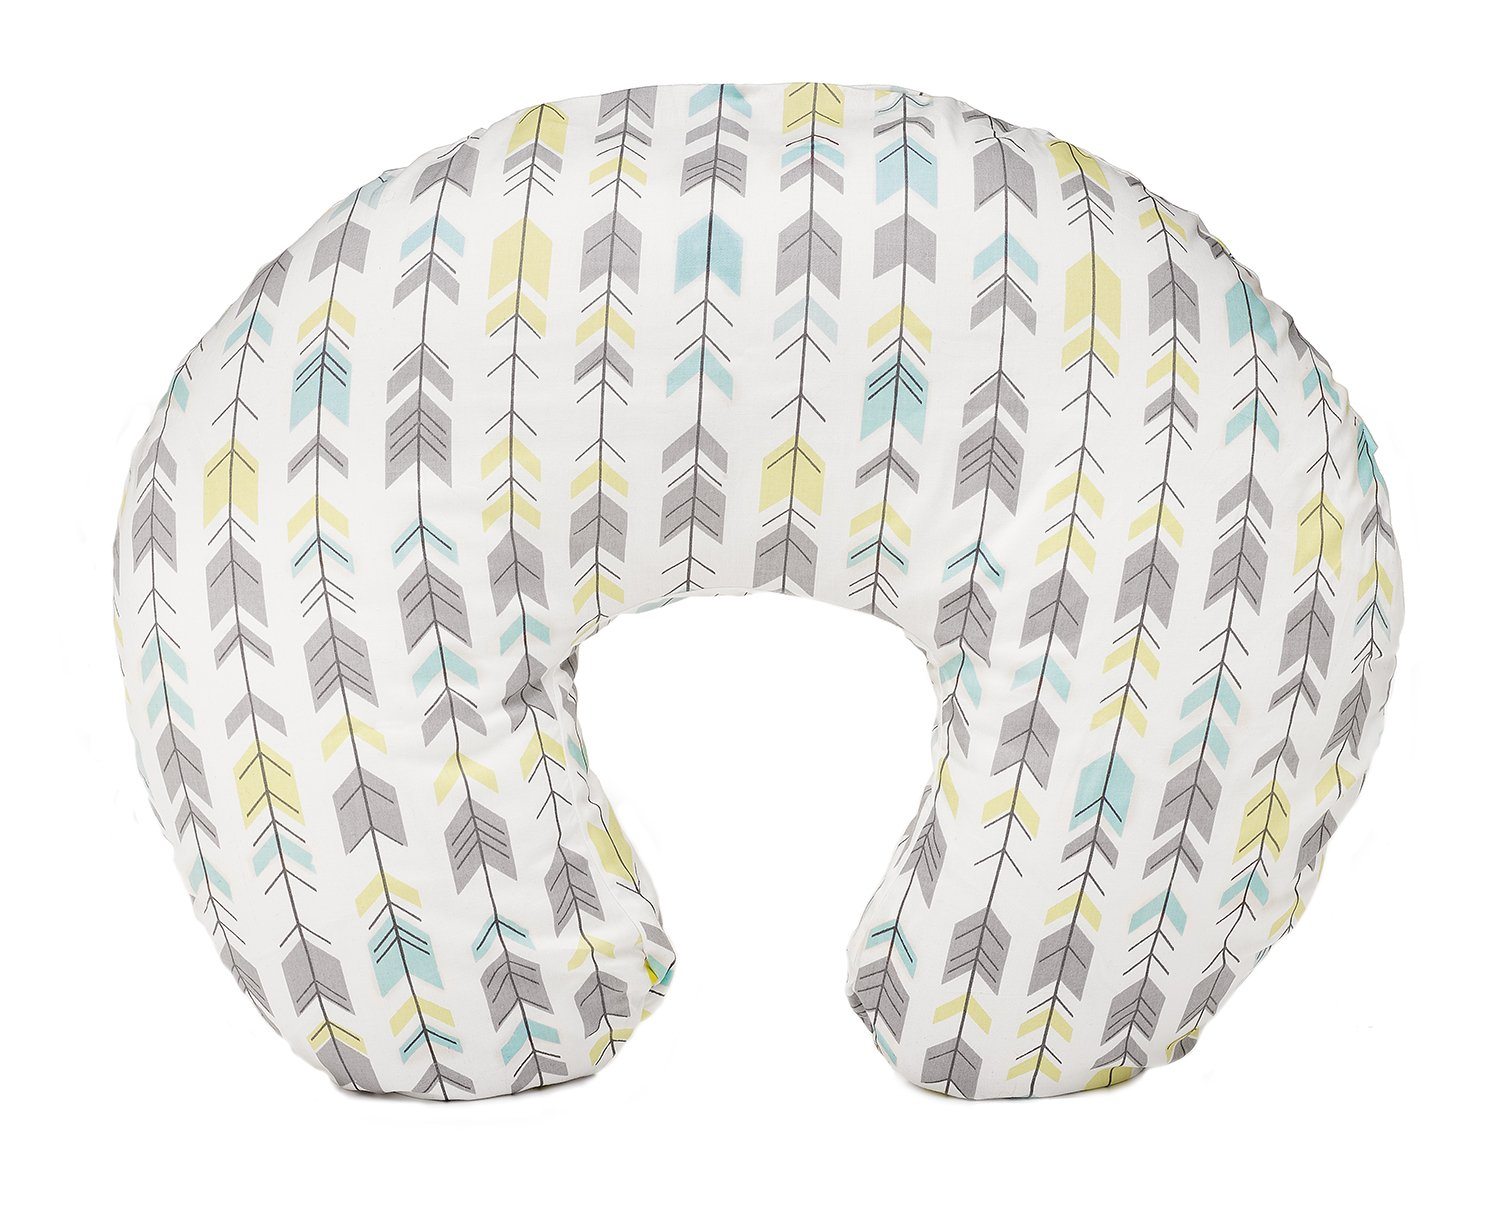 Org Store Premium Nursing Pillow Cover | Slipcover for Breastfeeding Pillows | Fits Most Boppy Pillows (Spring Colors)